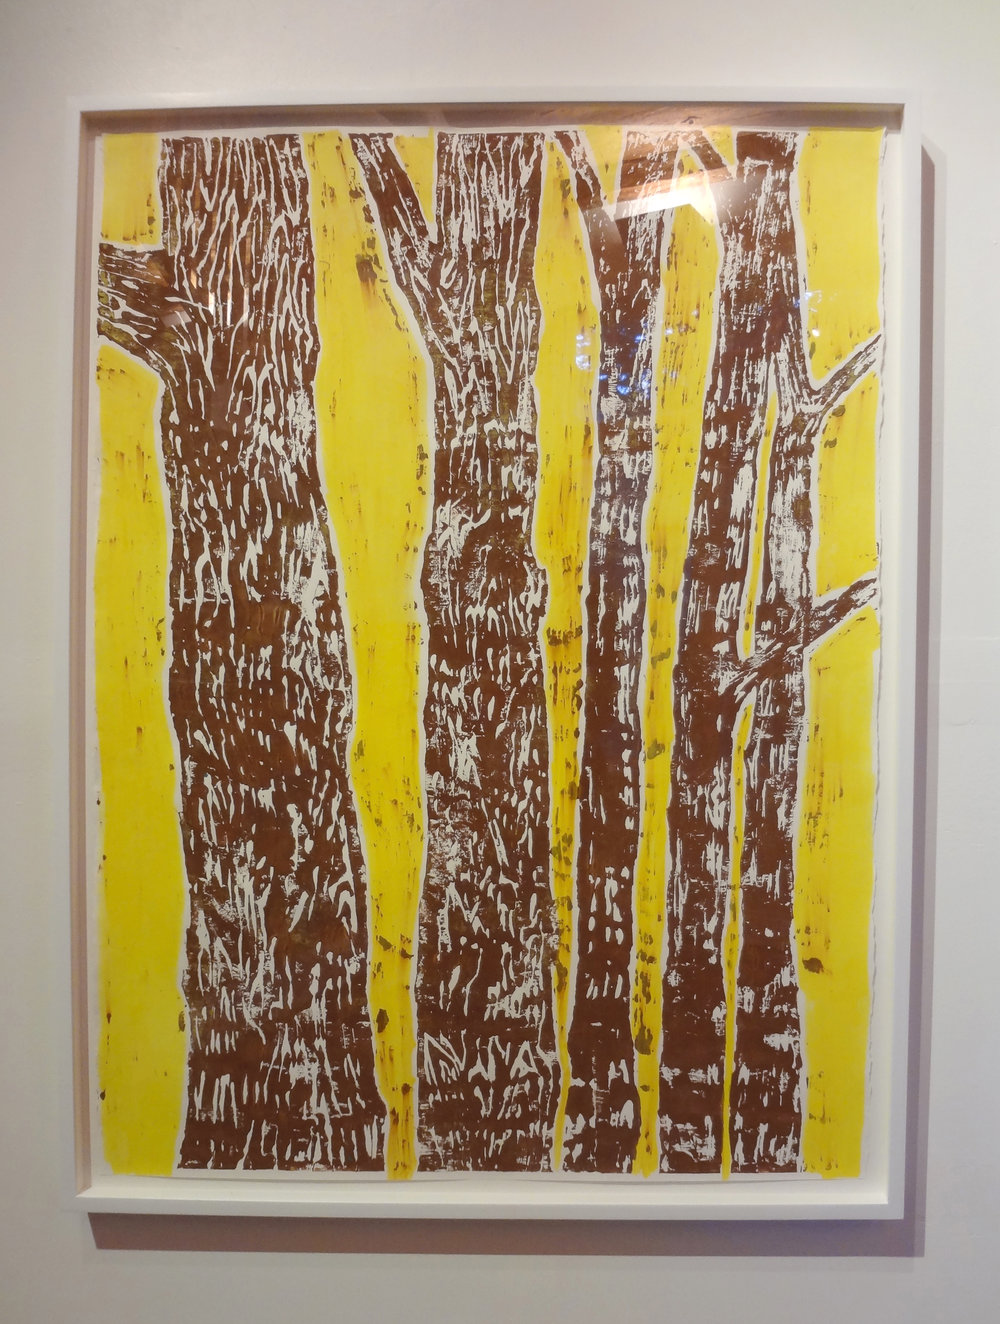 Meghan Gerety  Brown on Yellow Trees , 2012 blockprint ink on block print paper, 44 x 34 in. framed